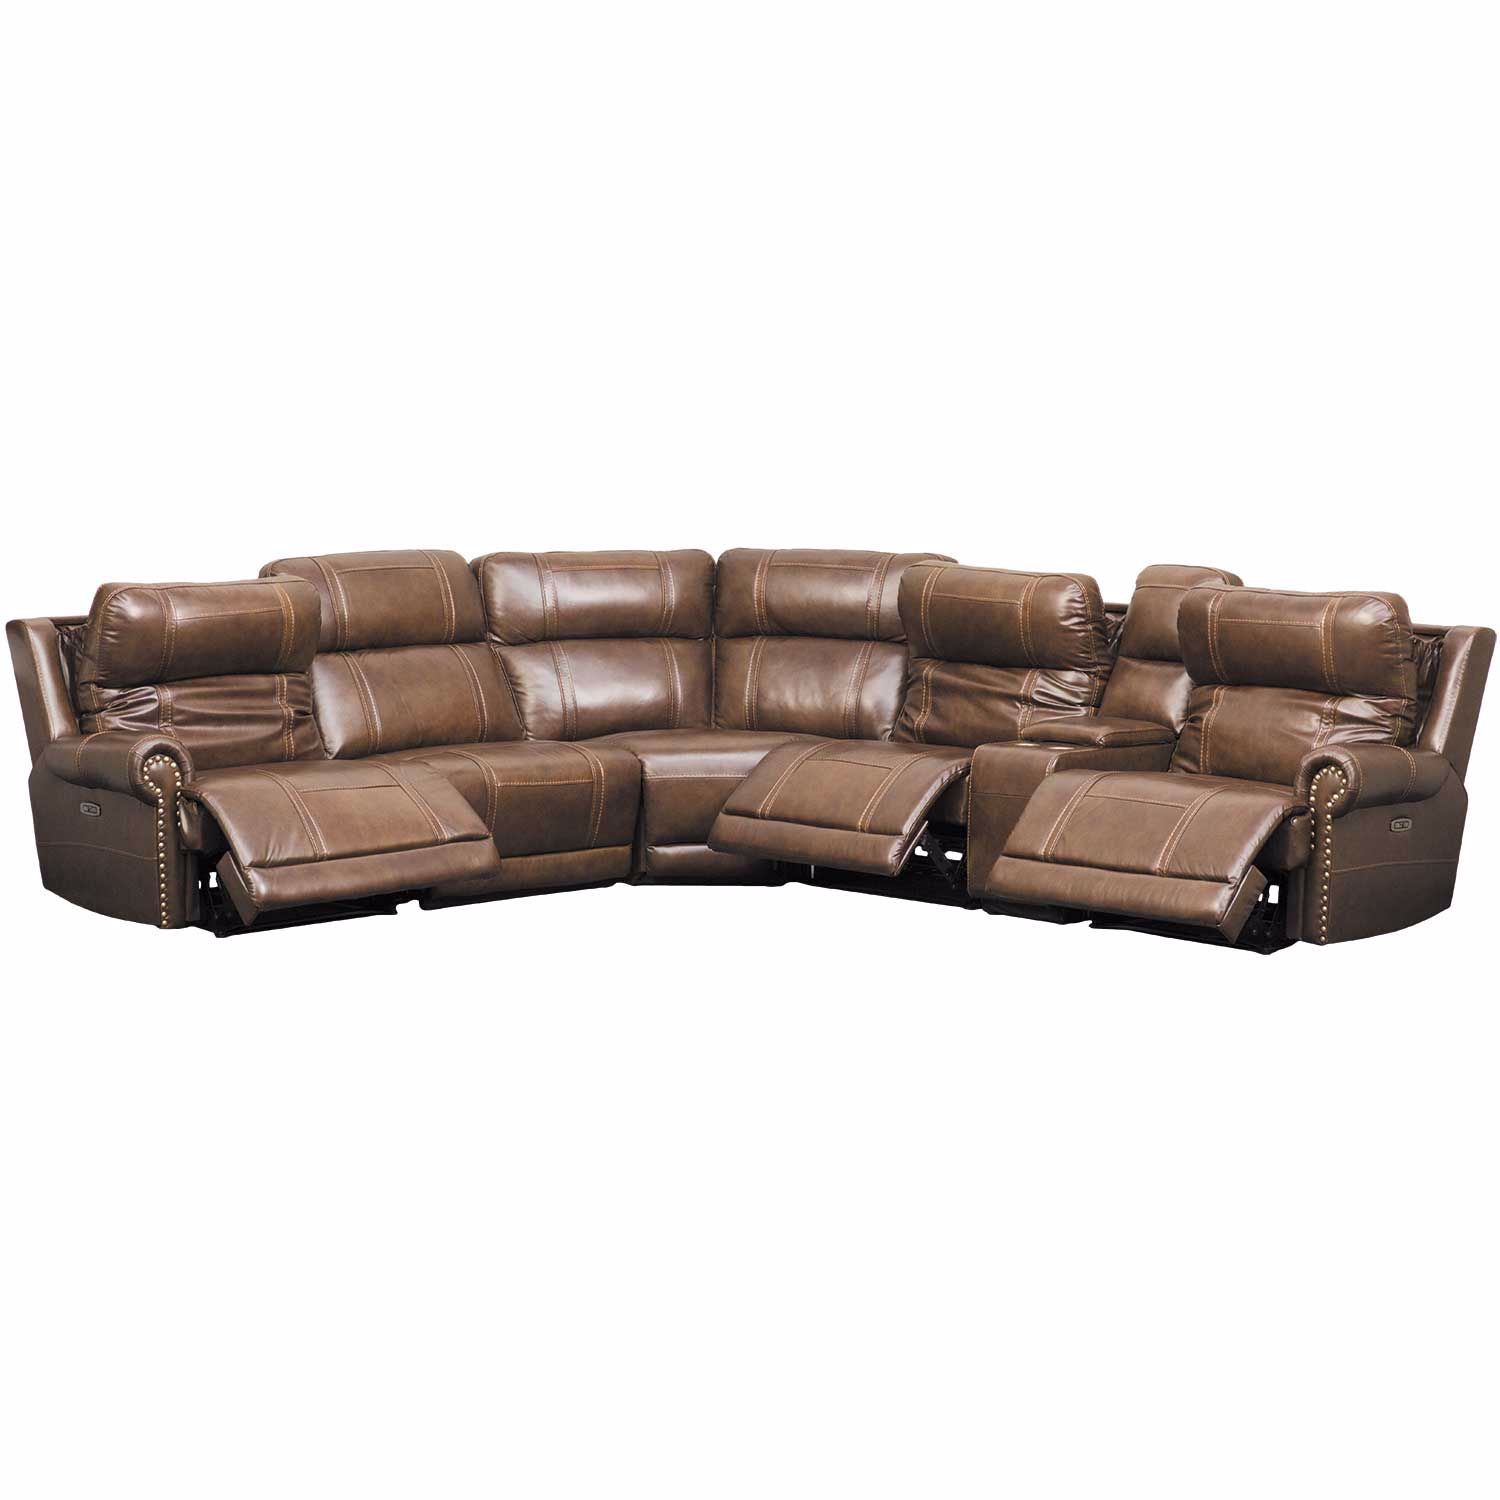 Picture of Sullivan 6PC Leather Power Reclining Sectional